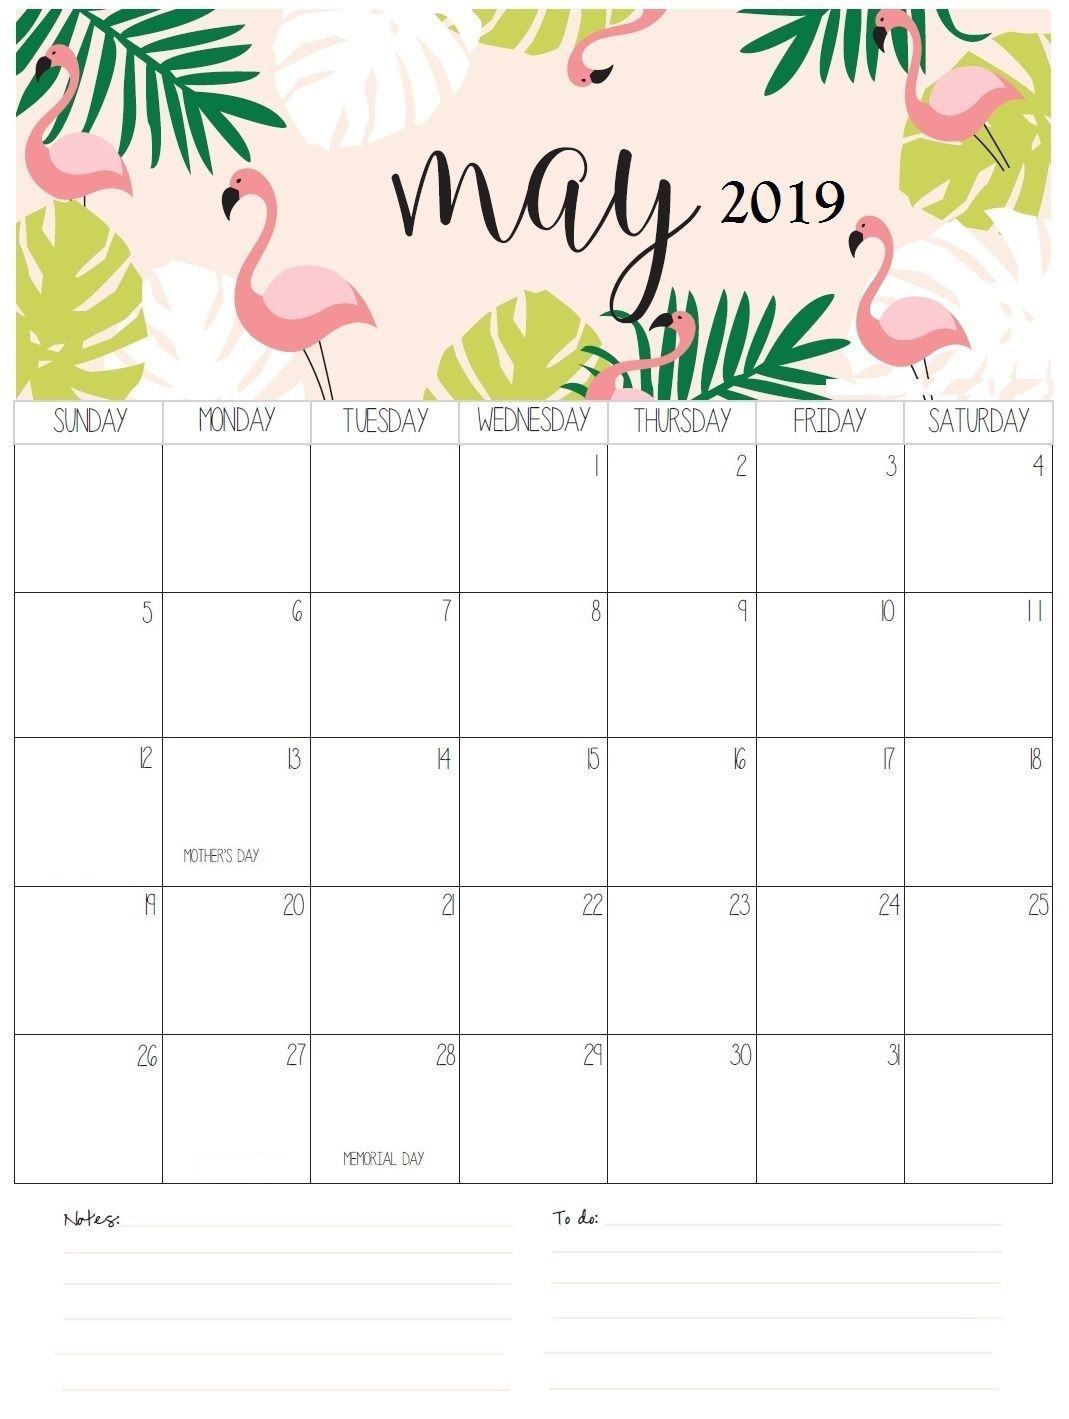 download may 2019 printable calendar template free printablemay 2019  calendar example